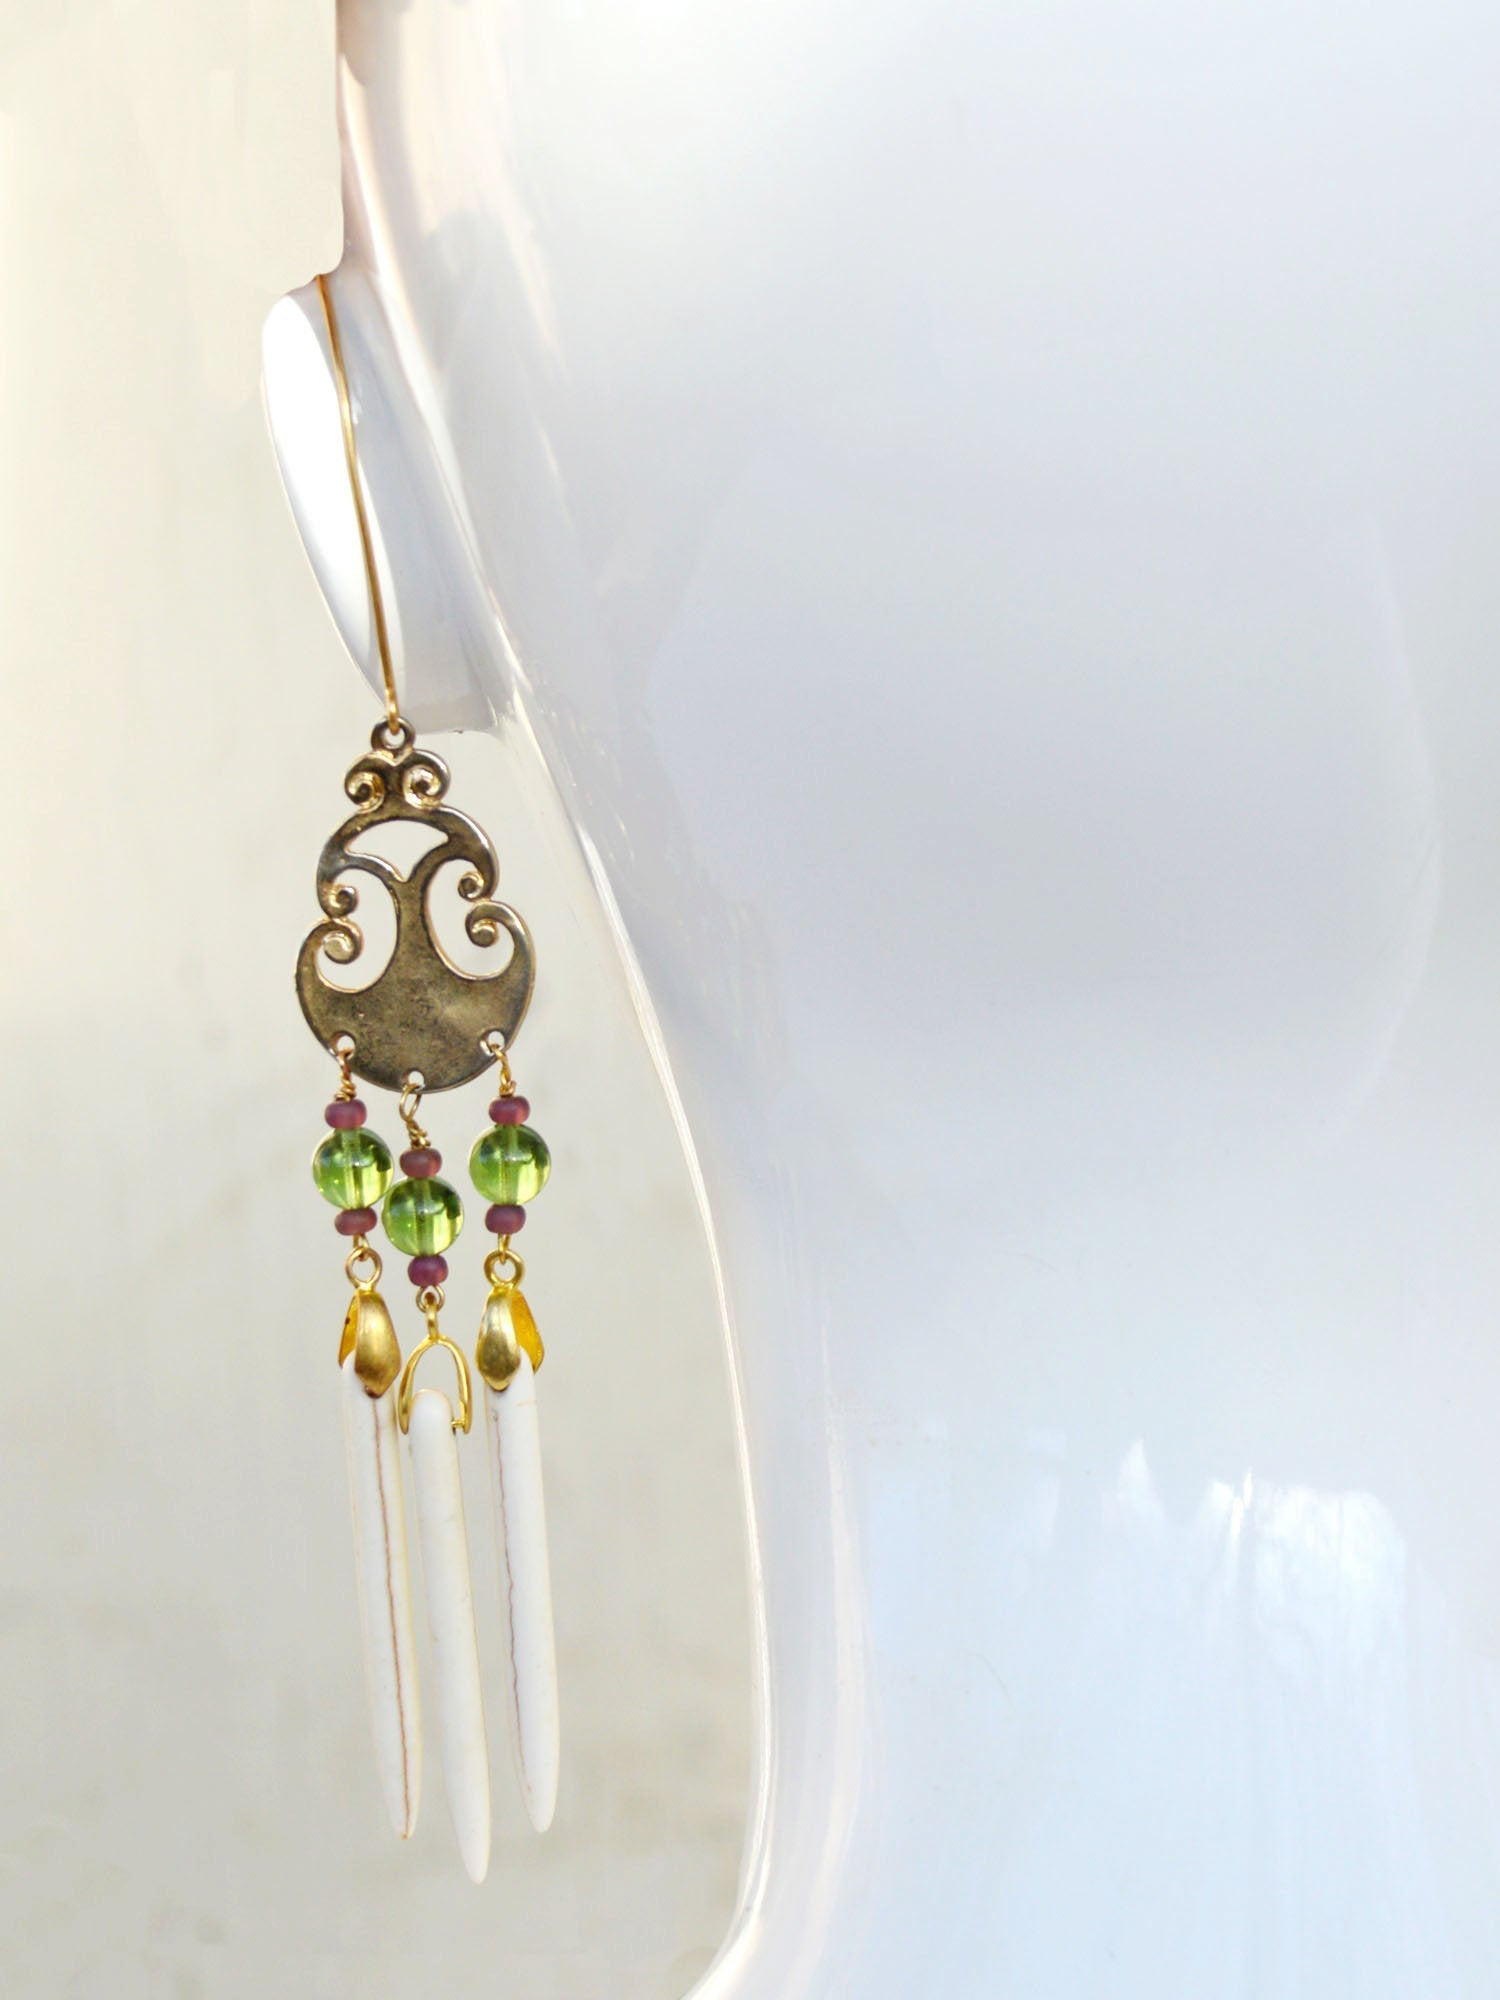 wedding earrings in green, gold, and white